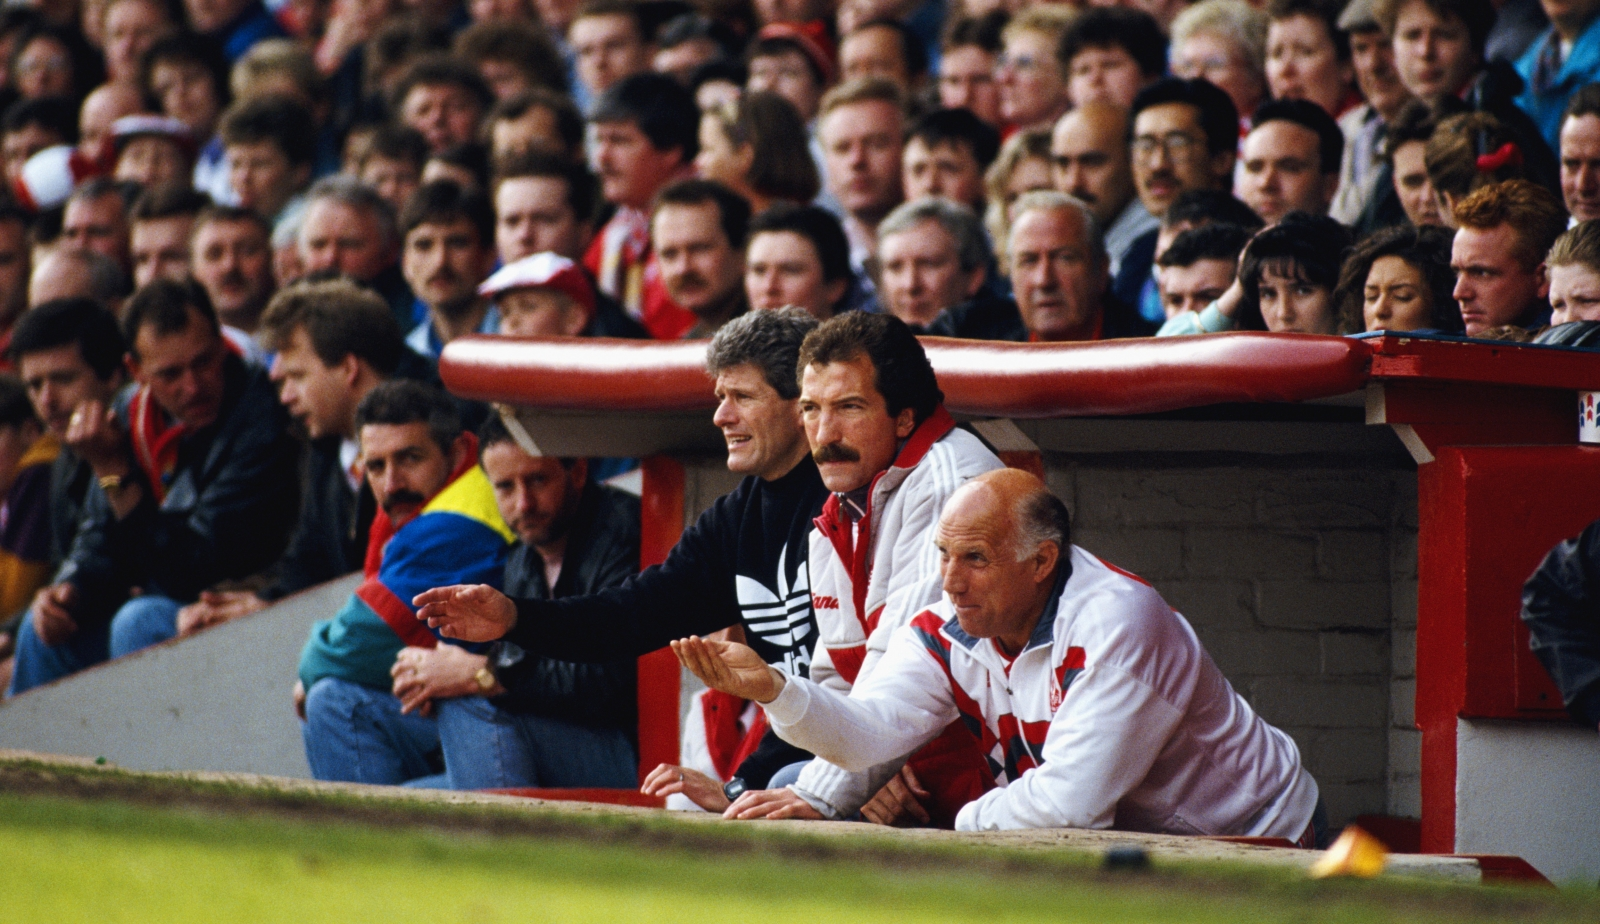 Graeme Souness and Ronnie Moran